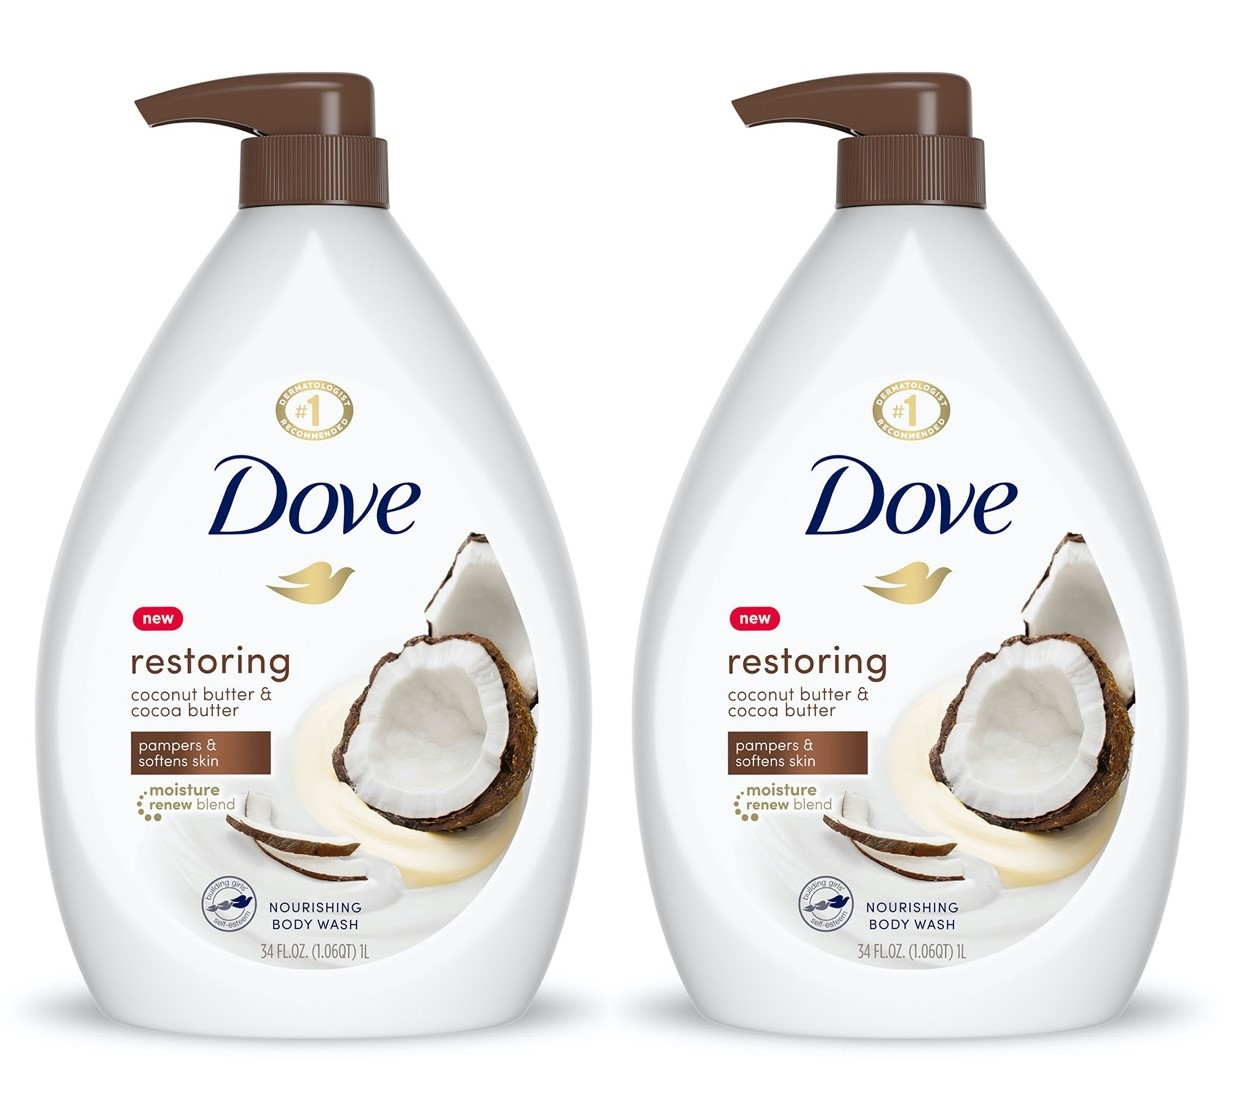 2 Pack Dove Purely Pampering Body Wash Coconut Butter Cocoa Butter 34 Oz Walmart Com Walmart Com